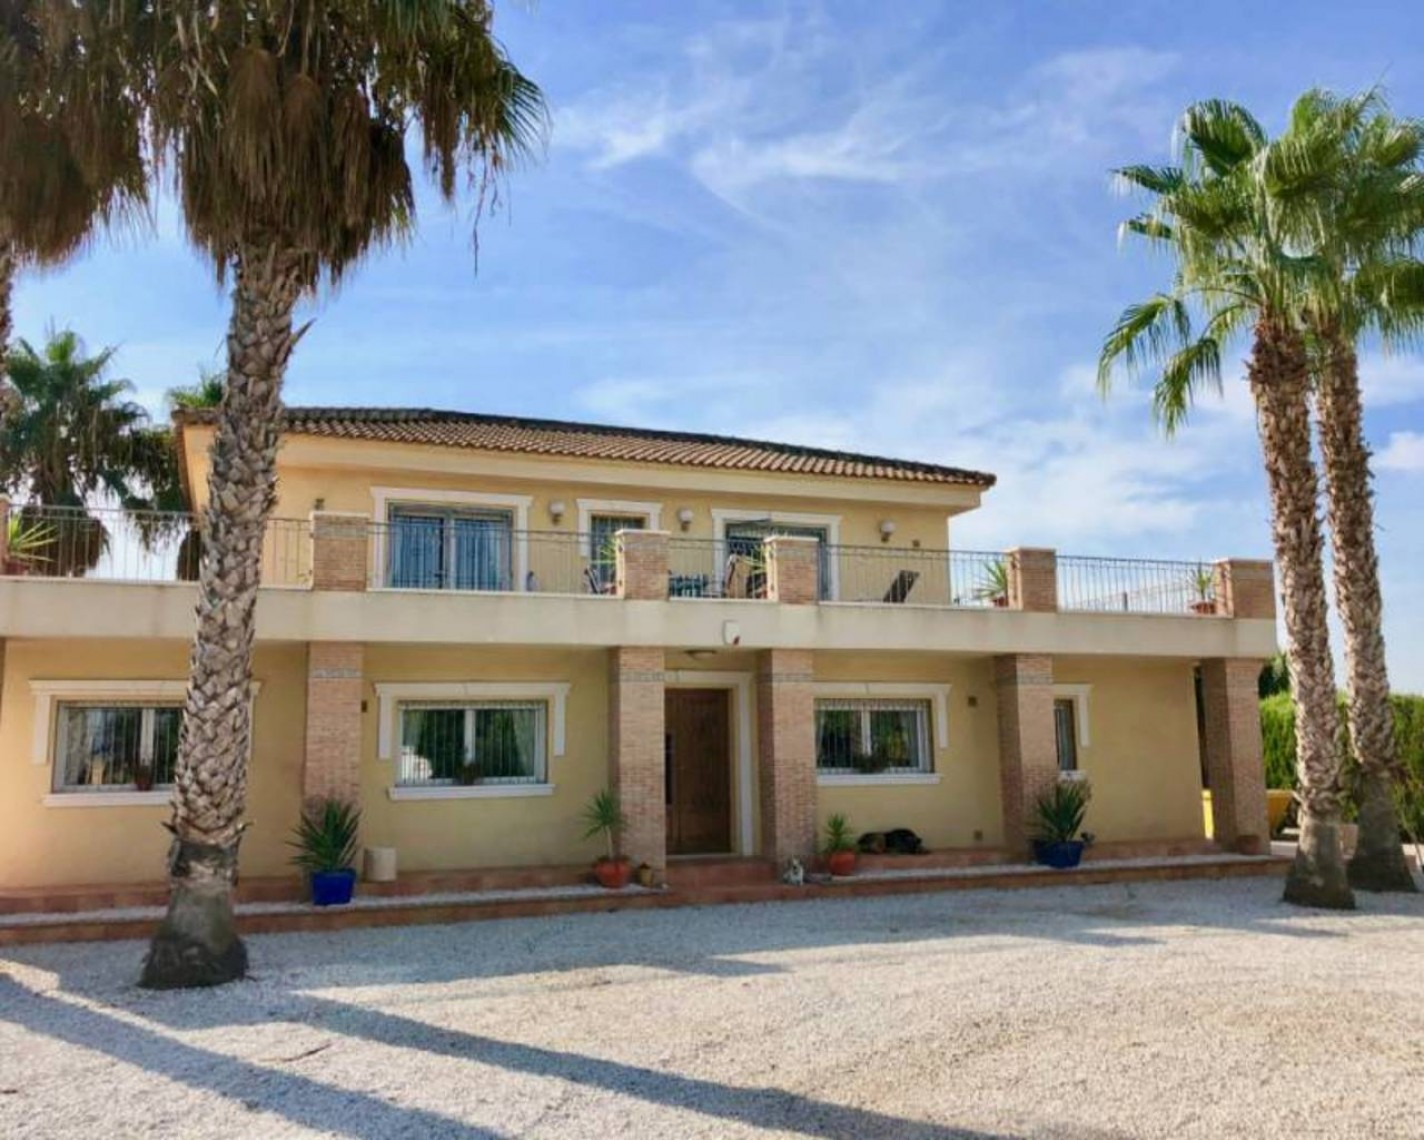 Villa for sale in Almoradi Alicante